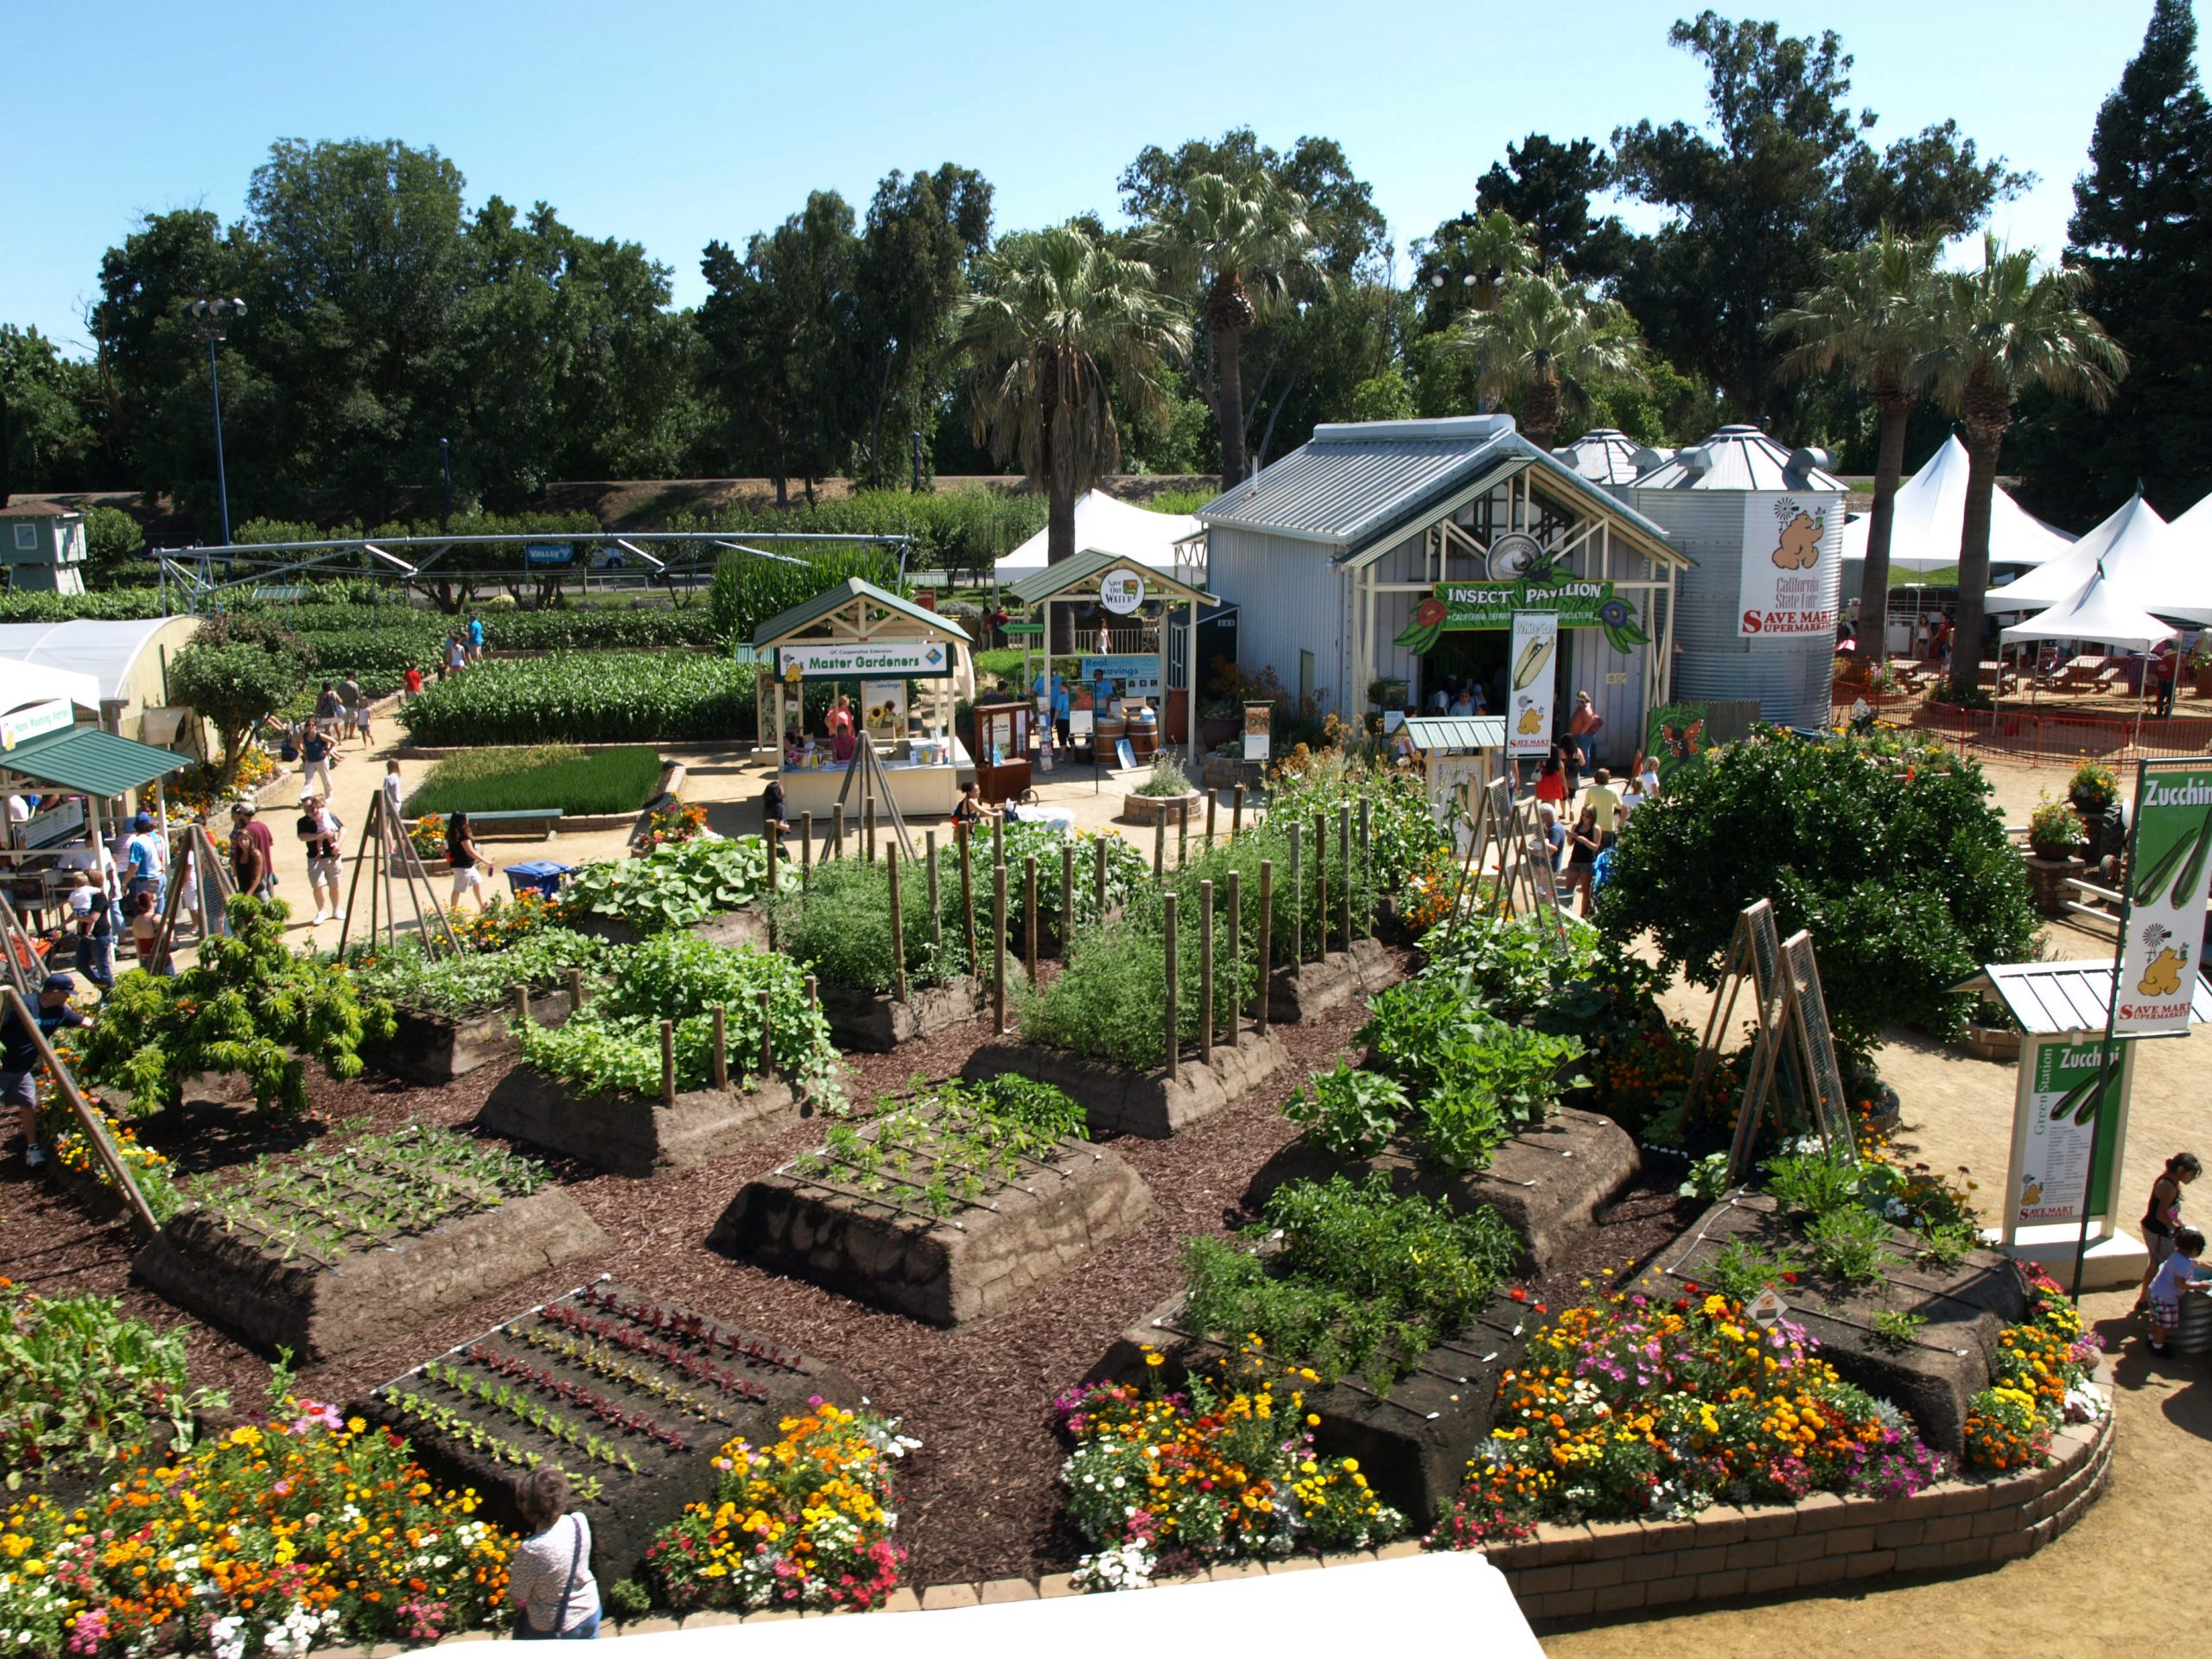 The Farm overview at CA State Fair - approved for media use